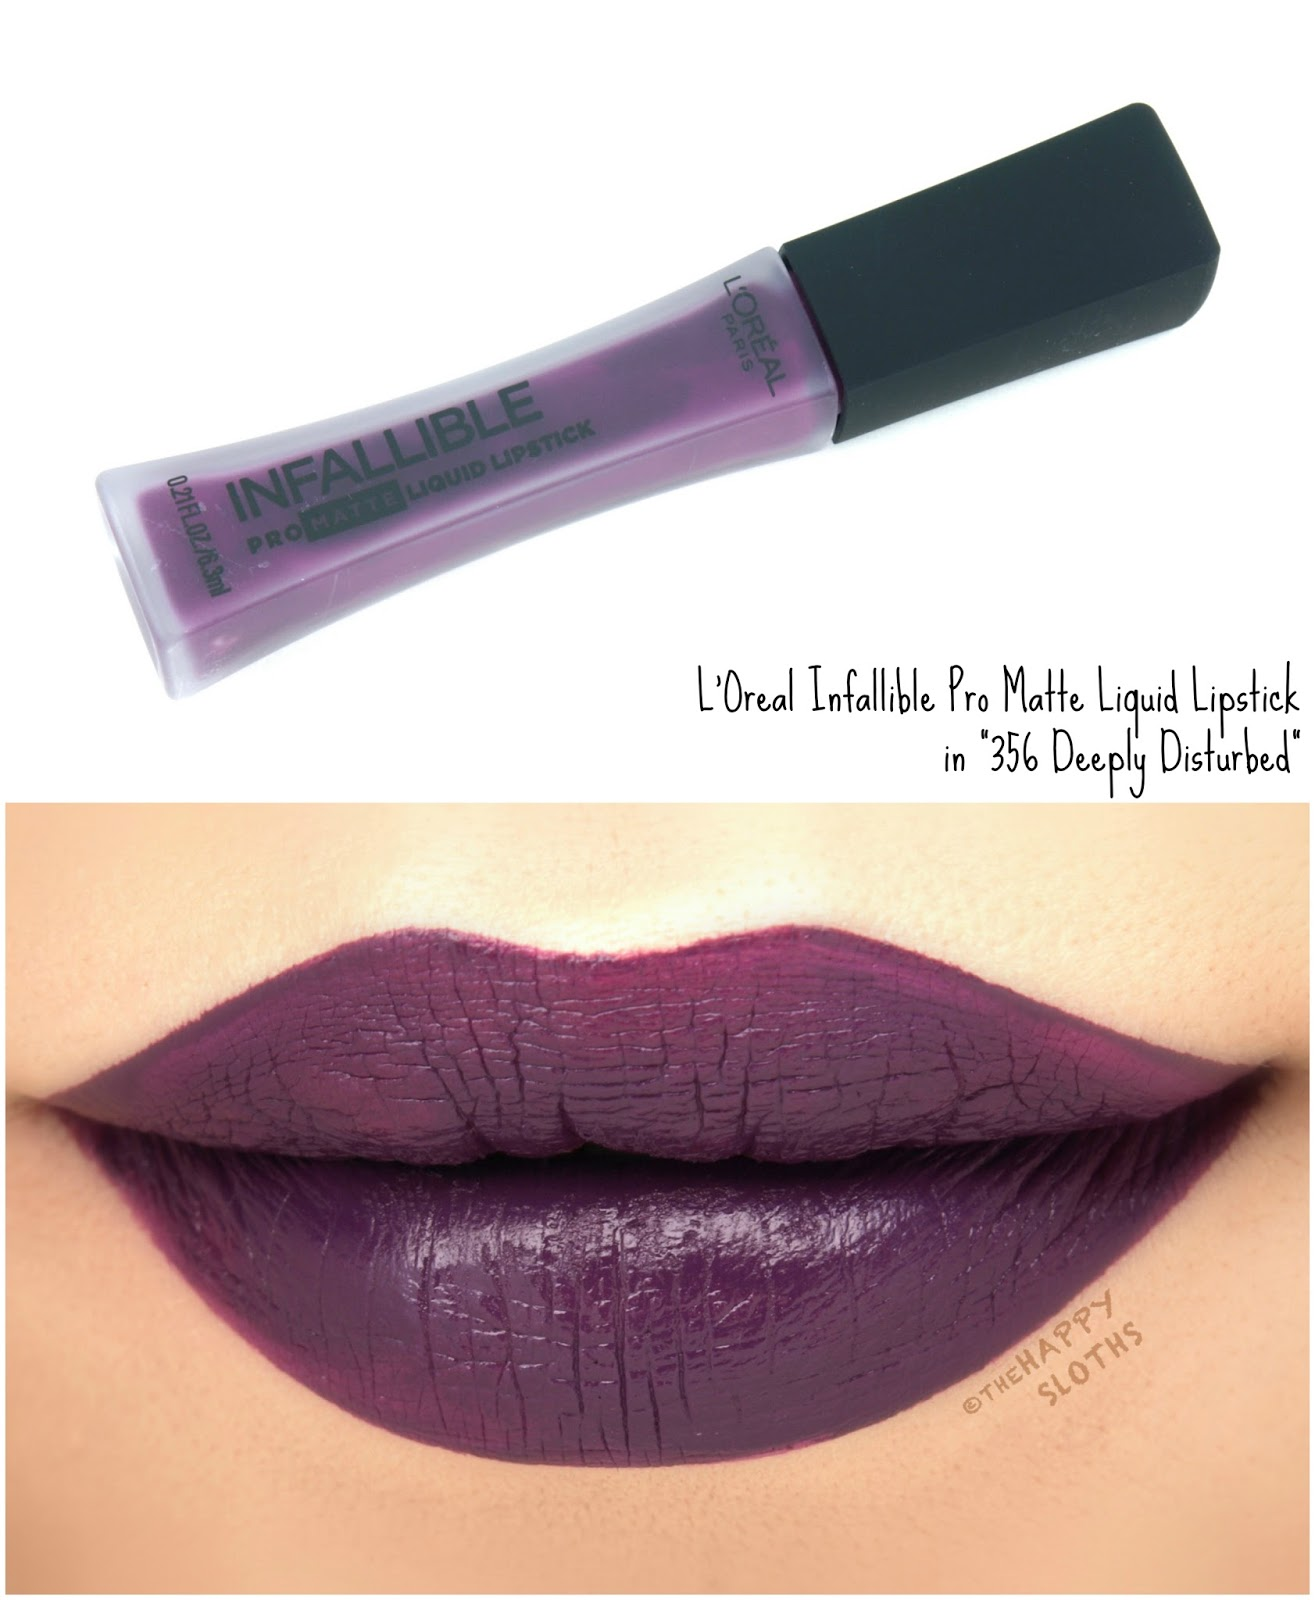 "L'Oreal Infallible Pro Matte Liquid Lipsticks ""356 Deeply Disturbed"": Review and Swatches"